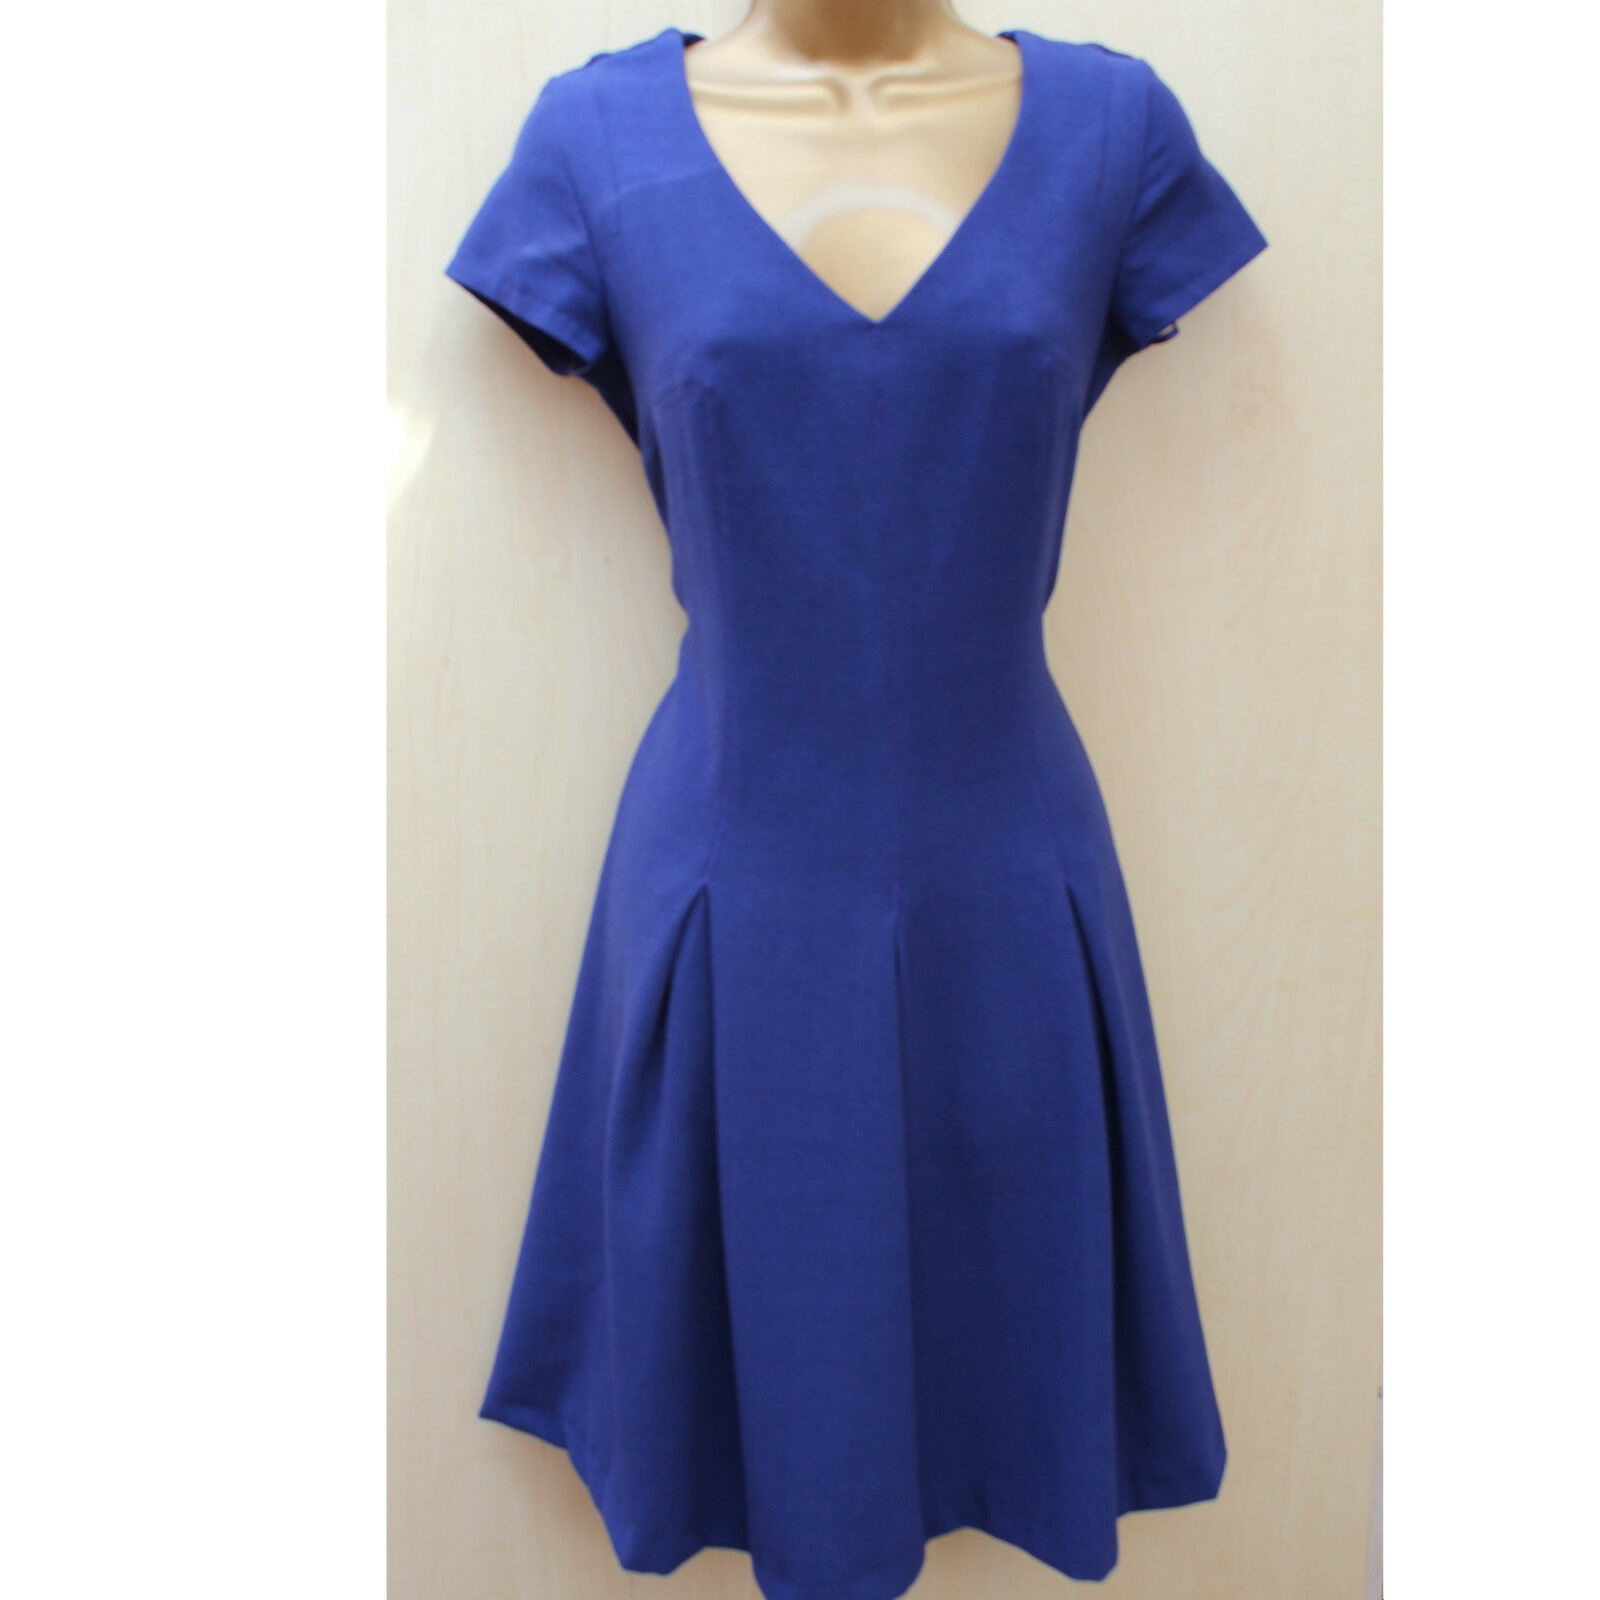 Next Classic Purple Crepe Fluted Tea Dress Casual Office Occasion Evening